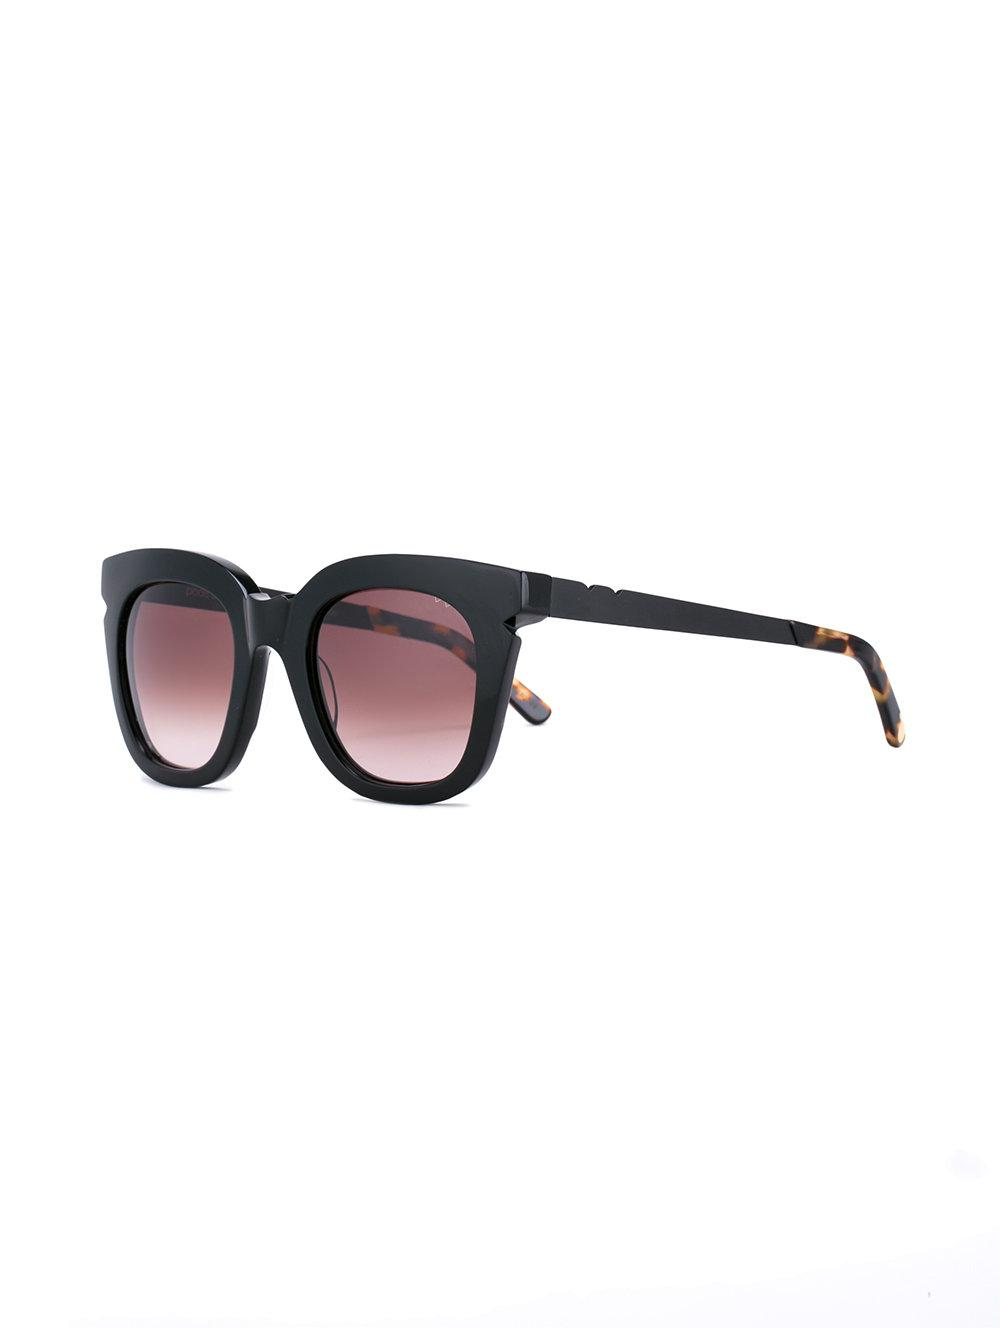 dc83582458 Lyst - Pared Eyewear Pools   Palms Sunglasses in Black